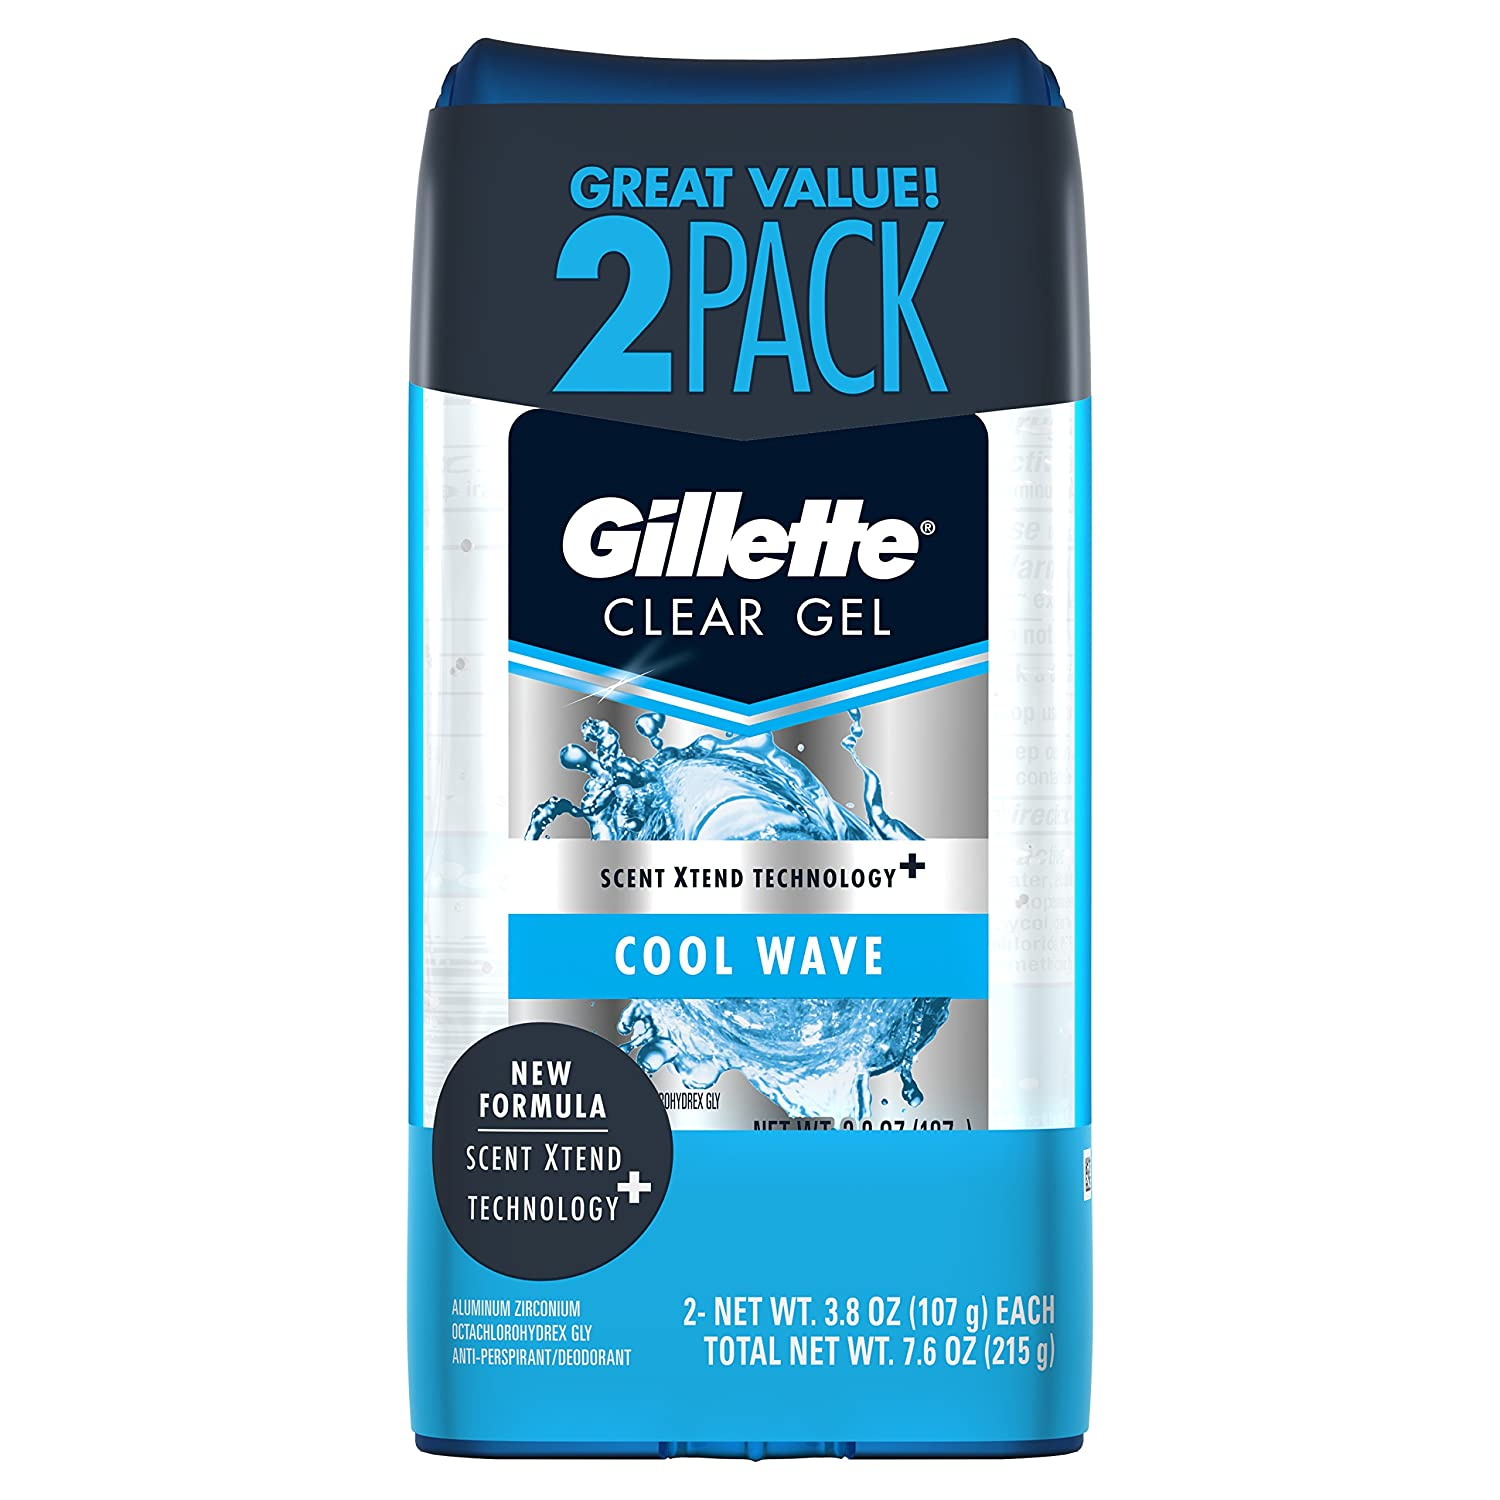 Gillette Endurance Antiperspirant / Deodorant, Cool Wave Clear Gel, 3.8 Ounce (Pack of 2), Packaging may Vary